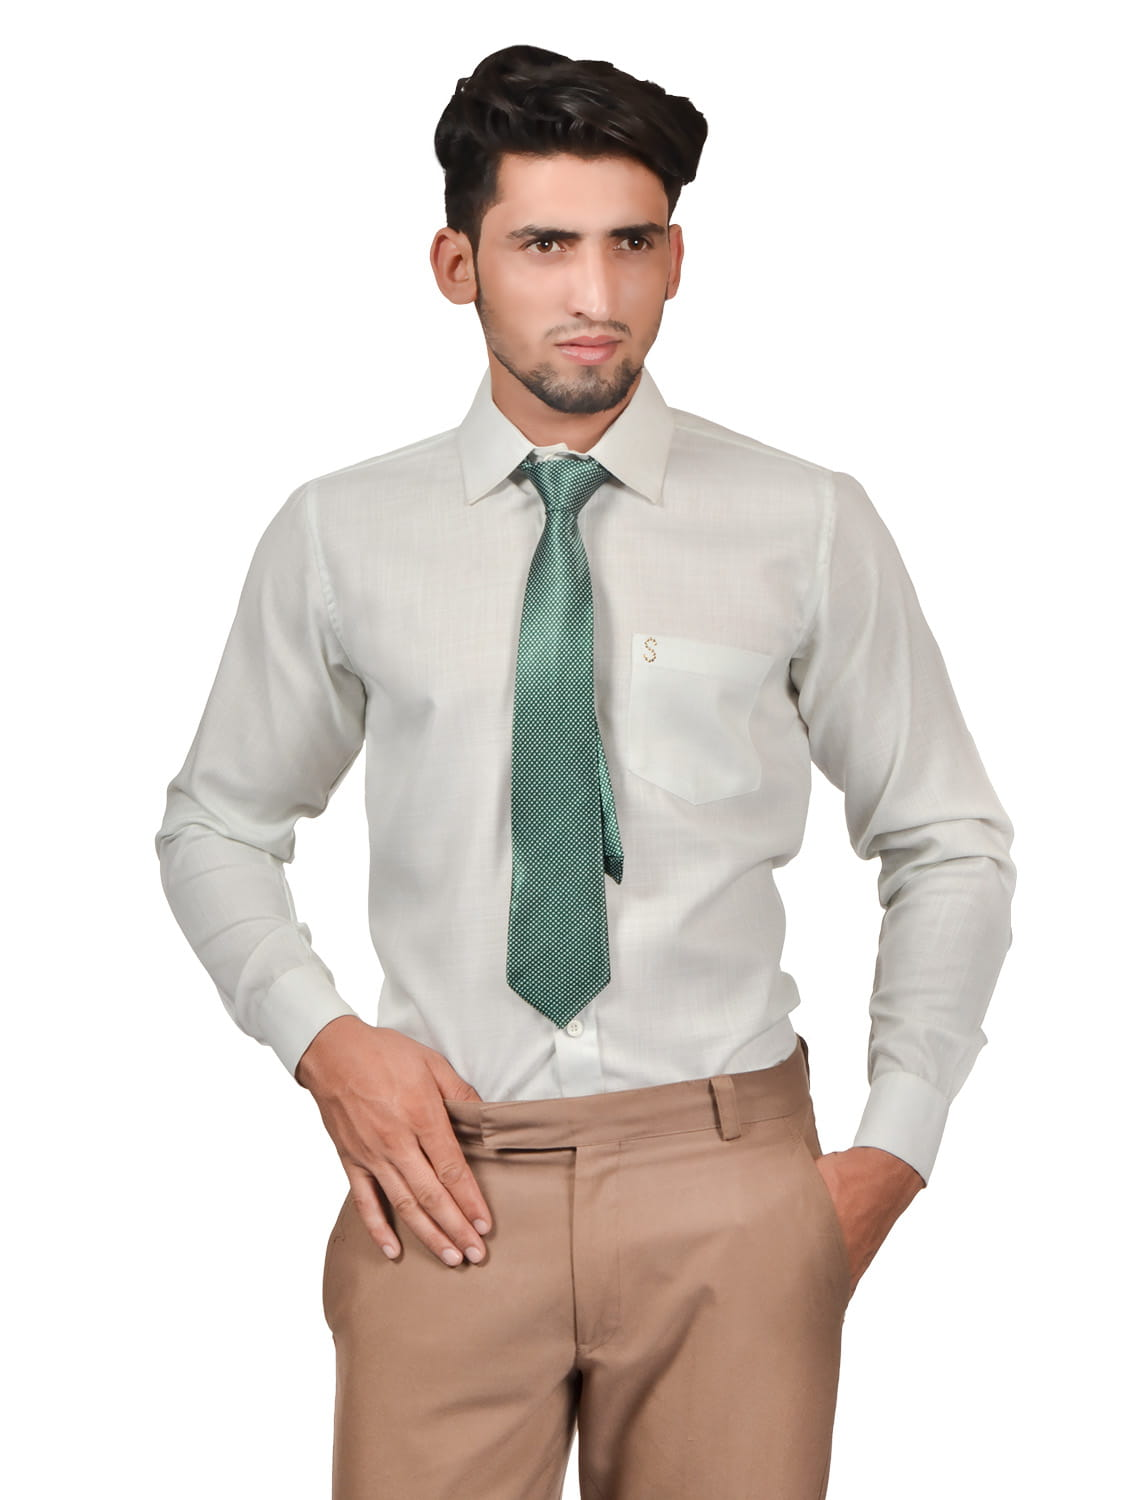 S9 Men Solid Formal Cotton Blend Shirt For Men Whitish With Green